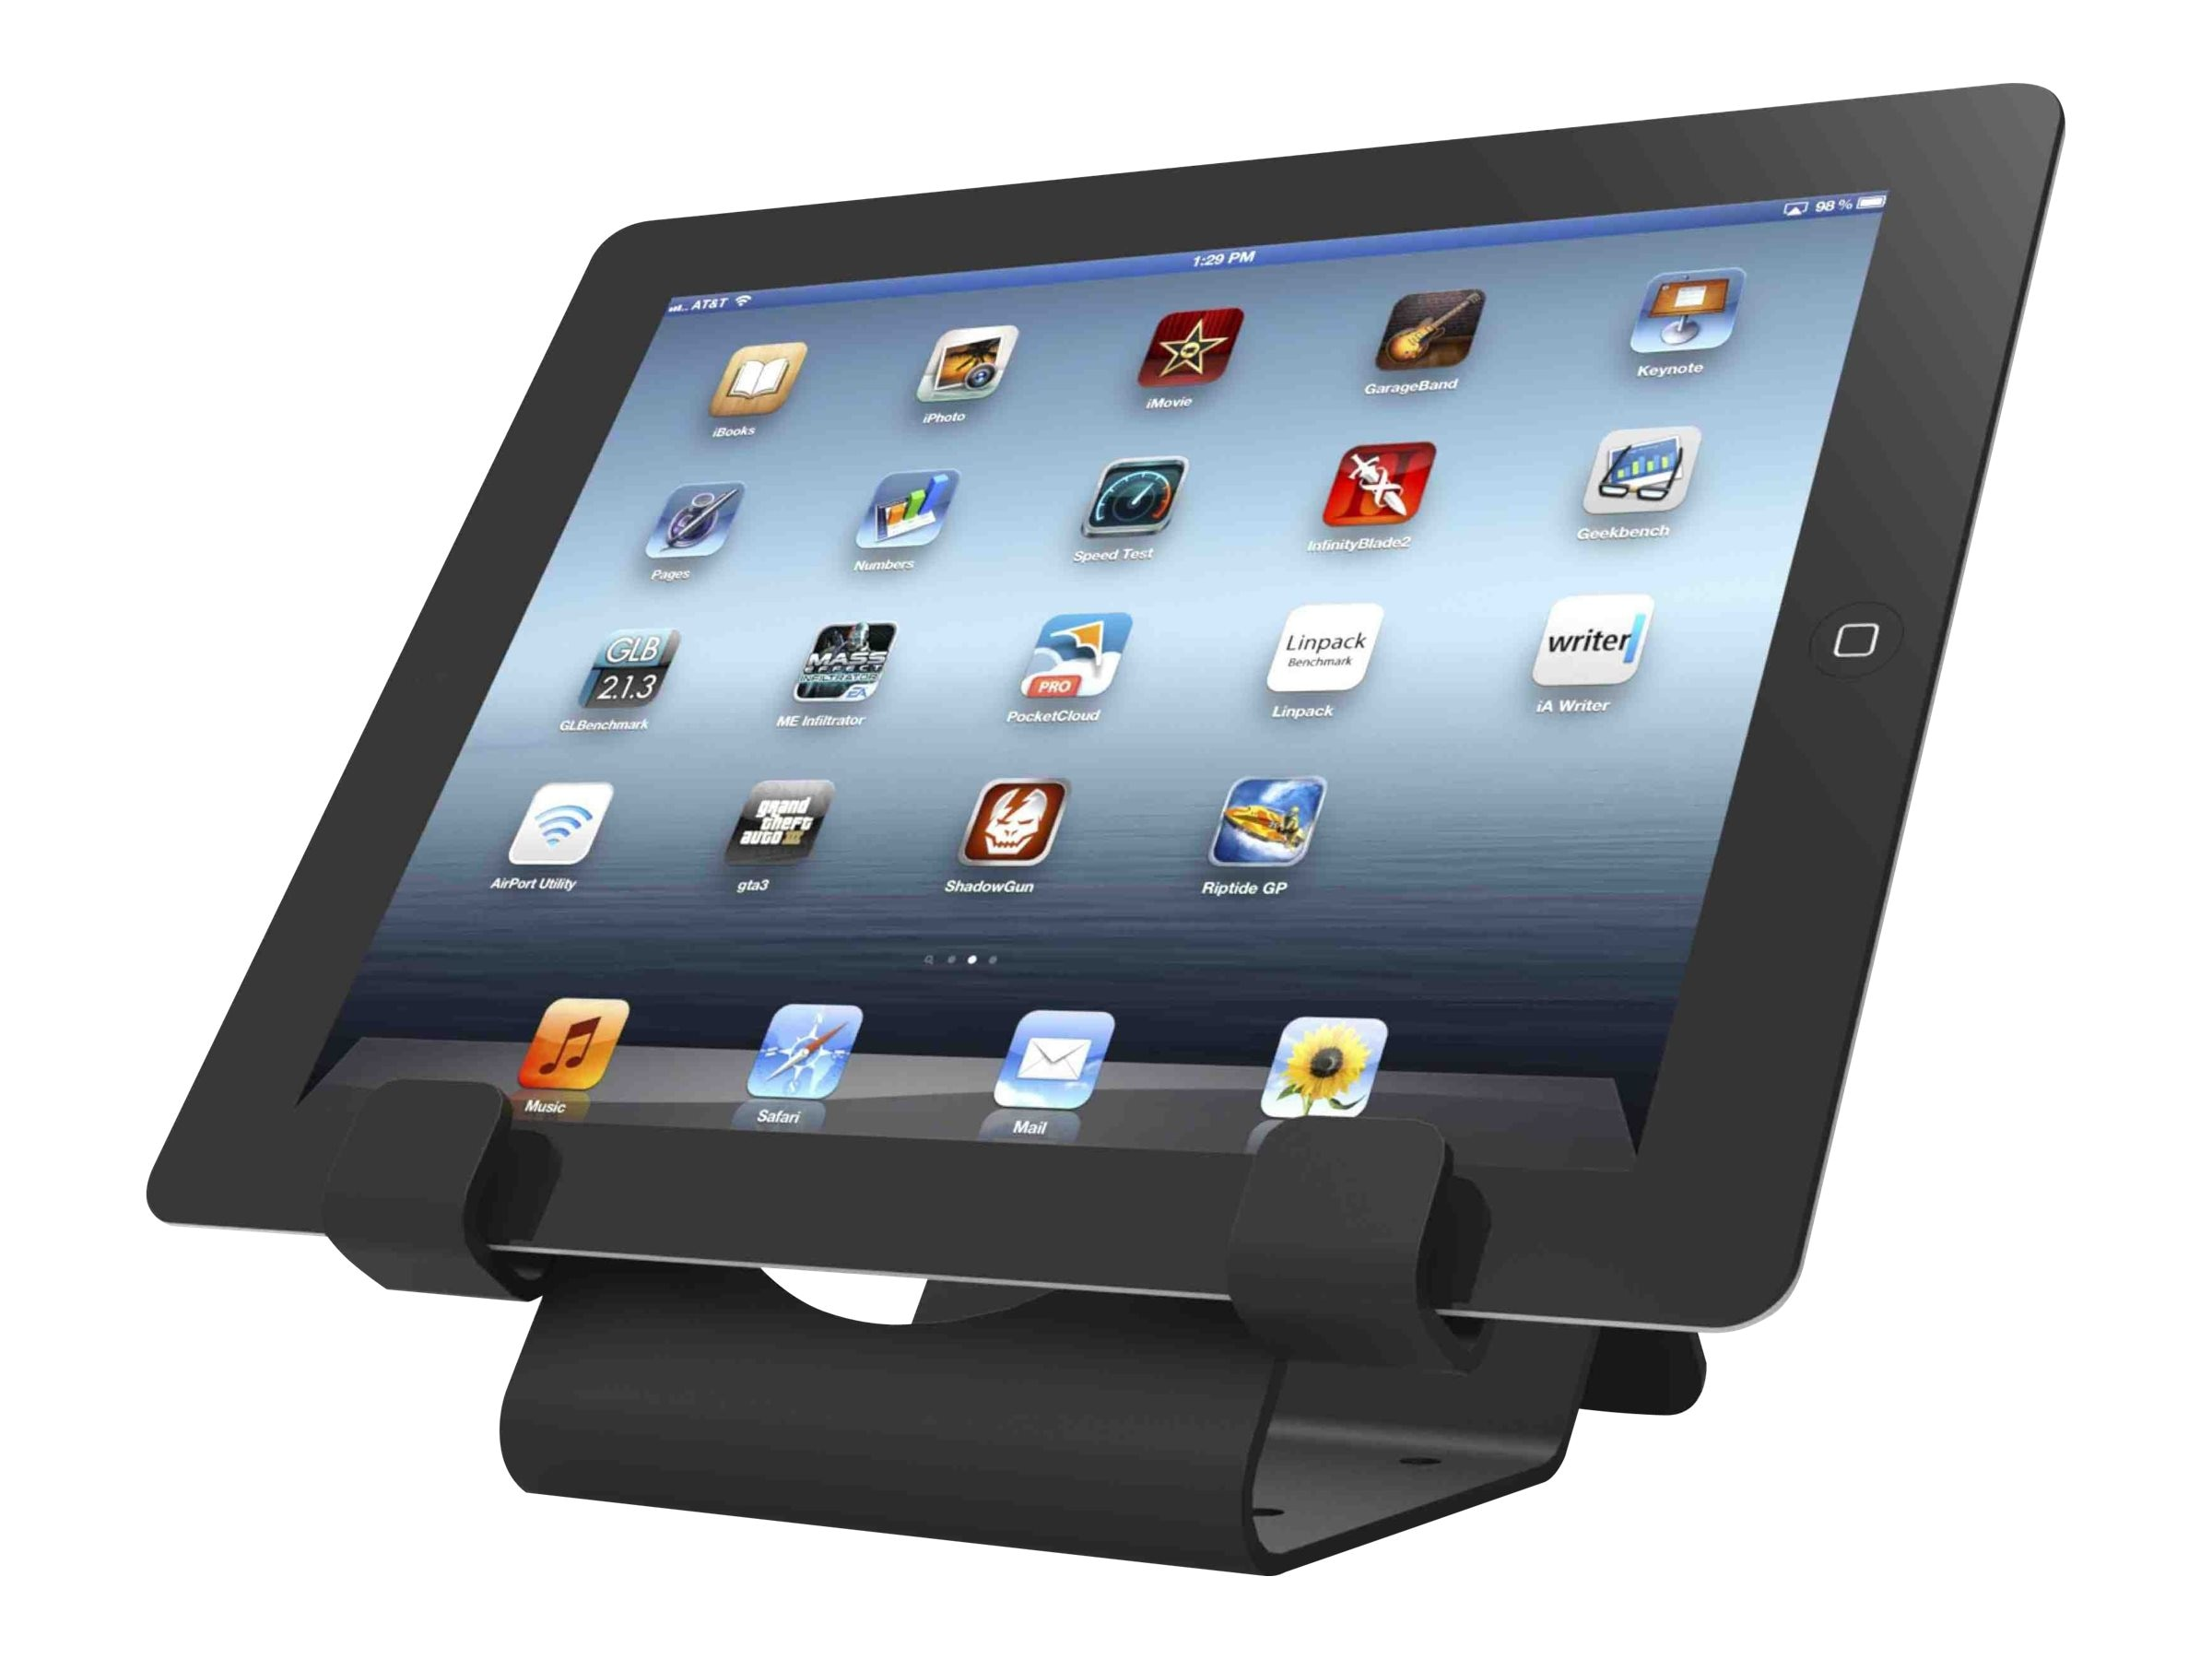 Compulocks Universal iPad and Tablet Security Holder, Black, CL12UTHBB, 30596511, Security Hardware